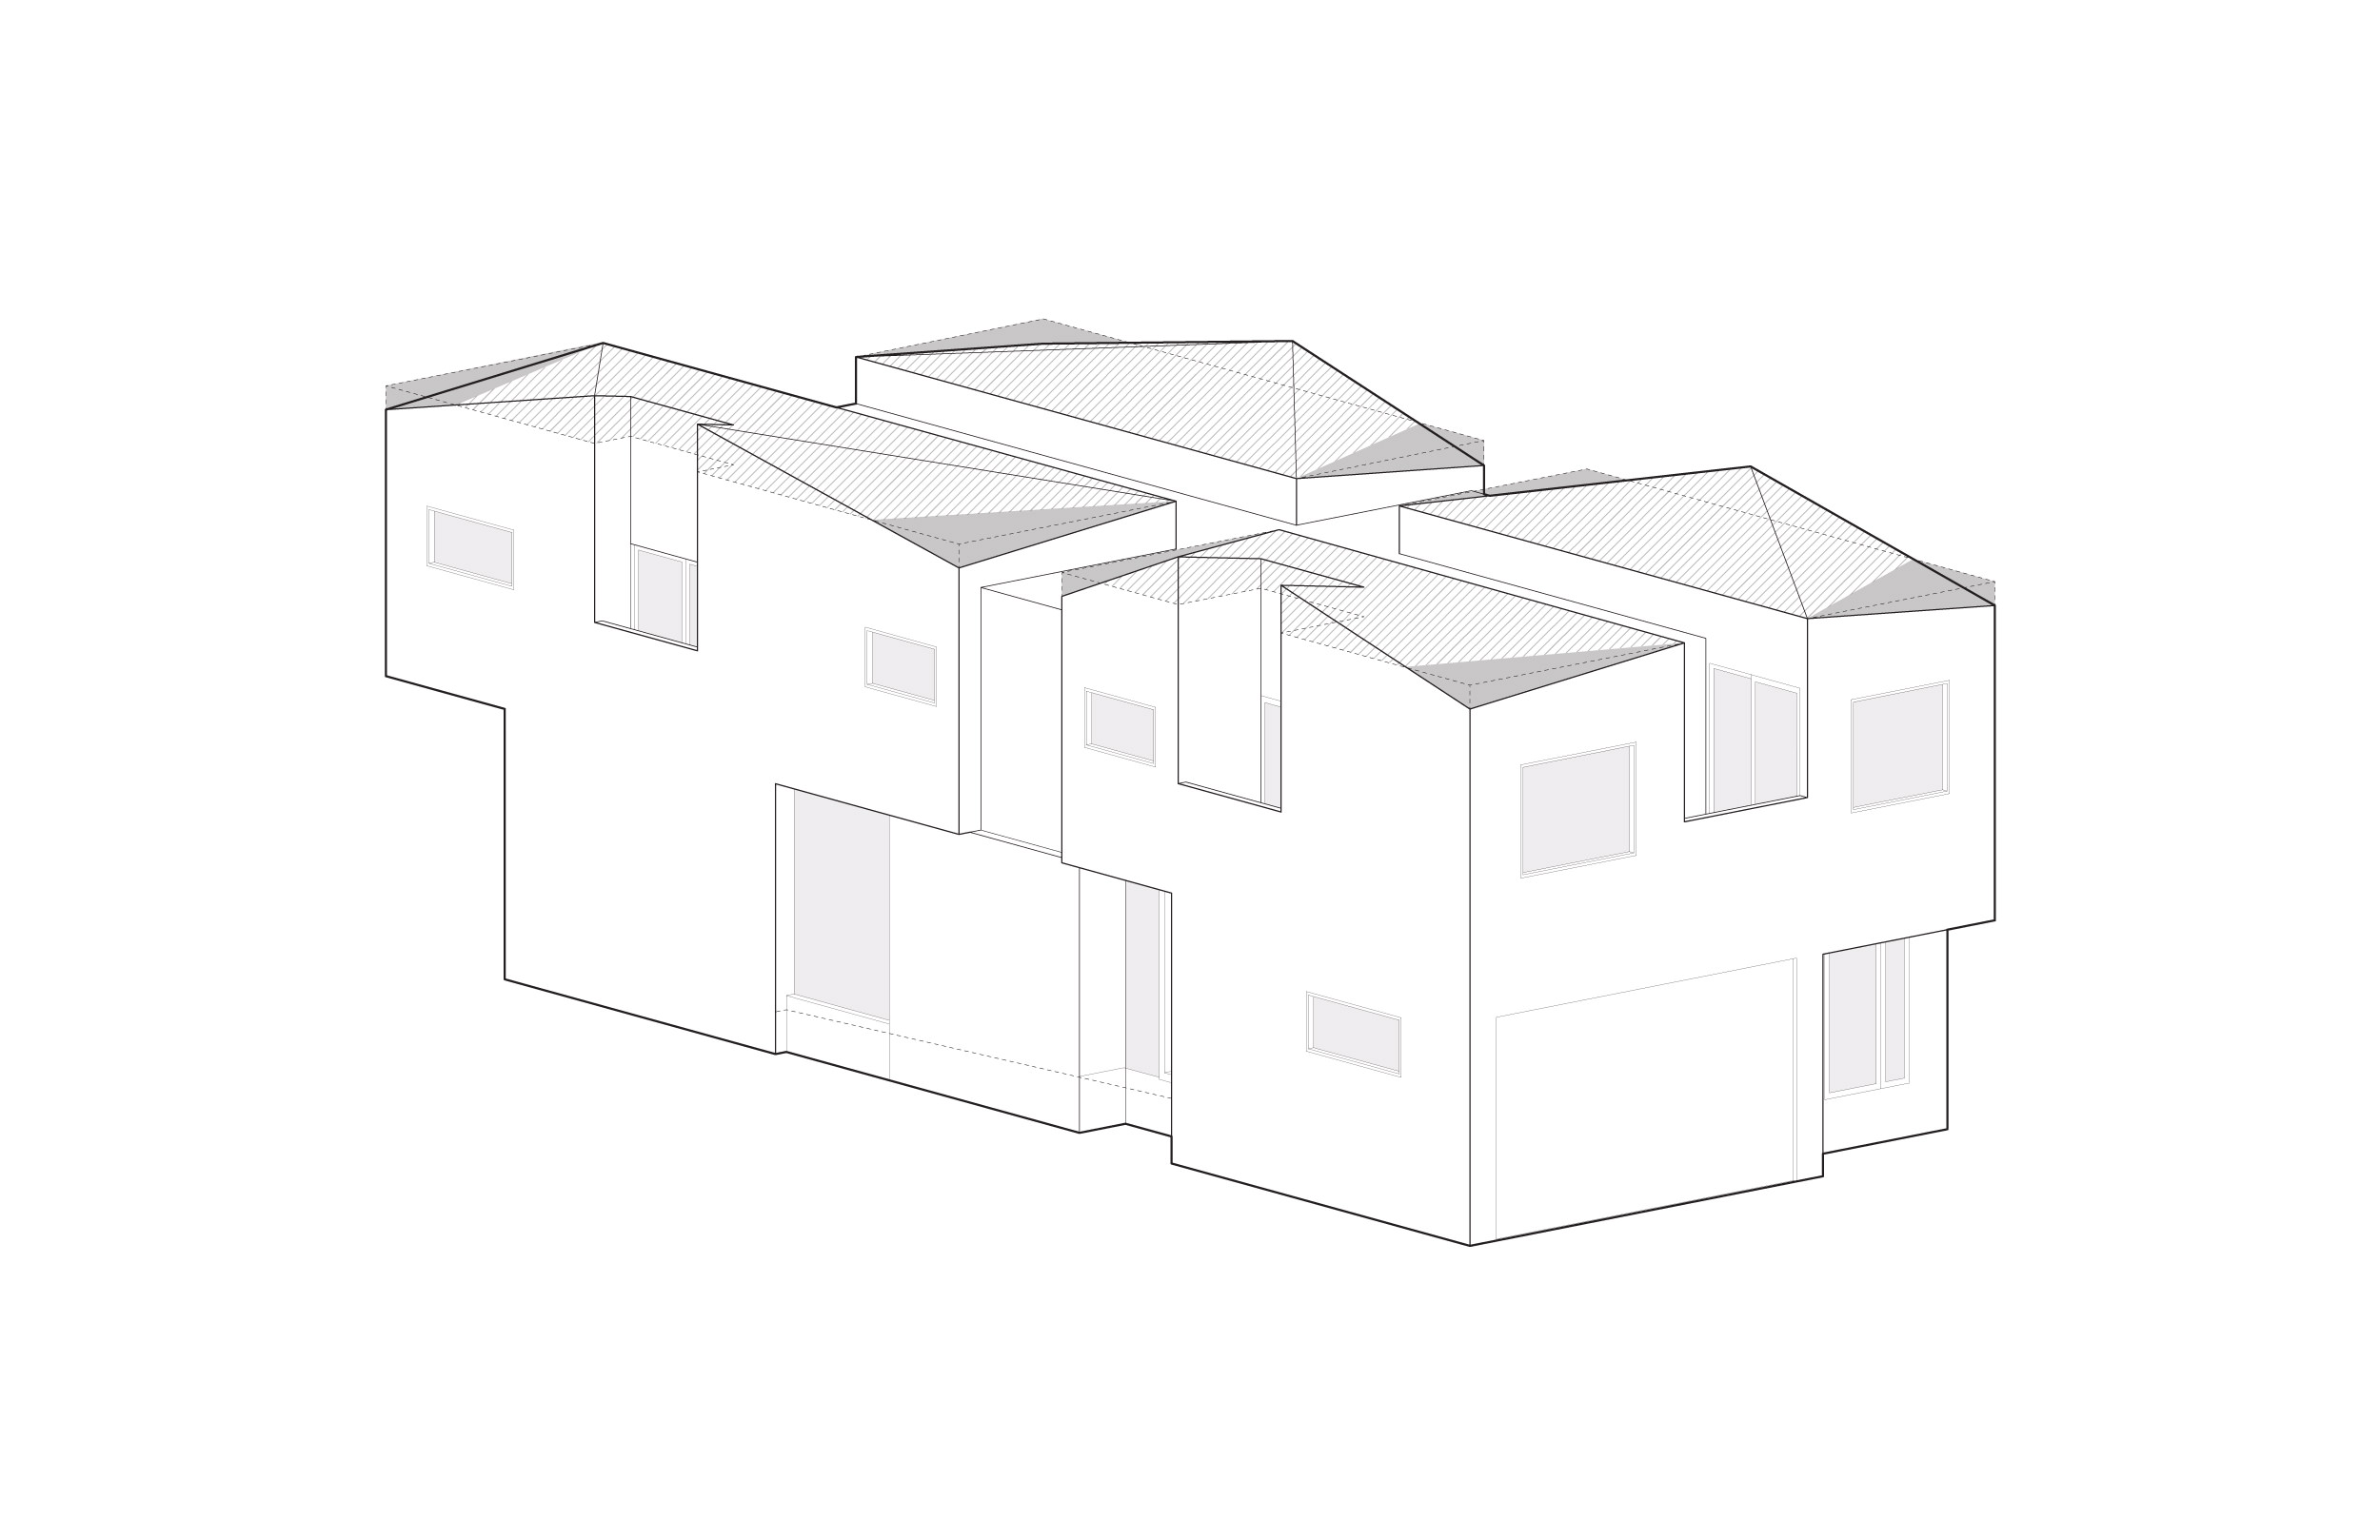 The roof was vaulted at each of the bedrooms to emphasize the ceiling height.